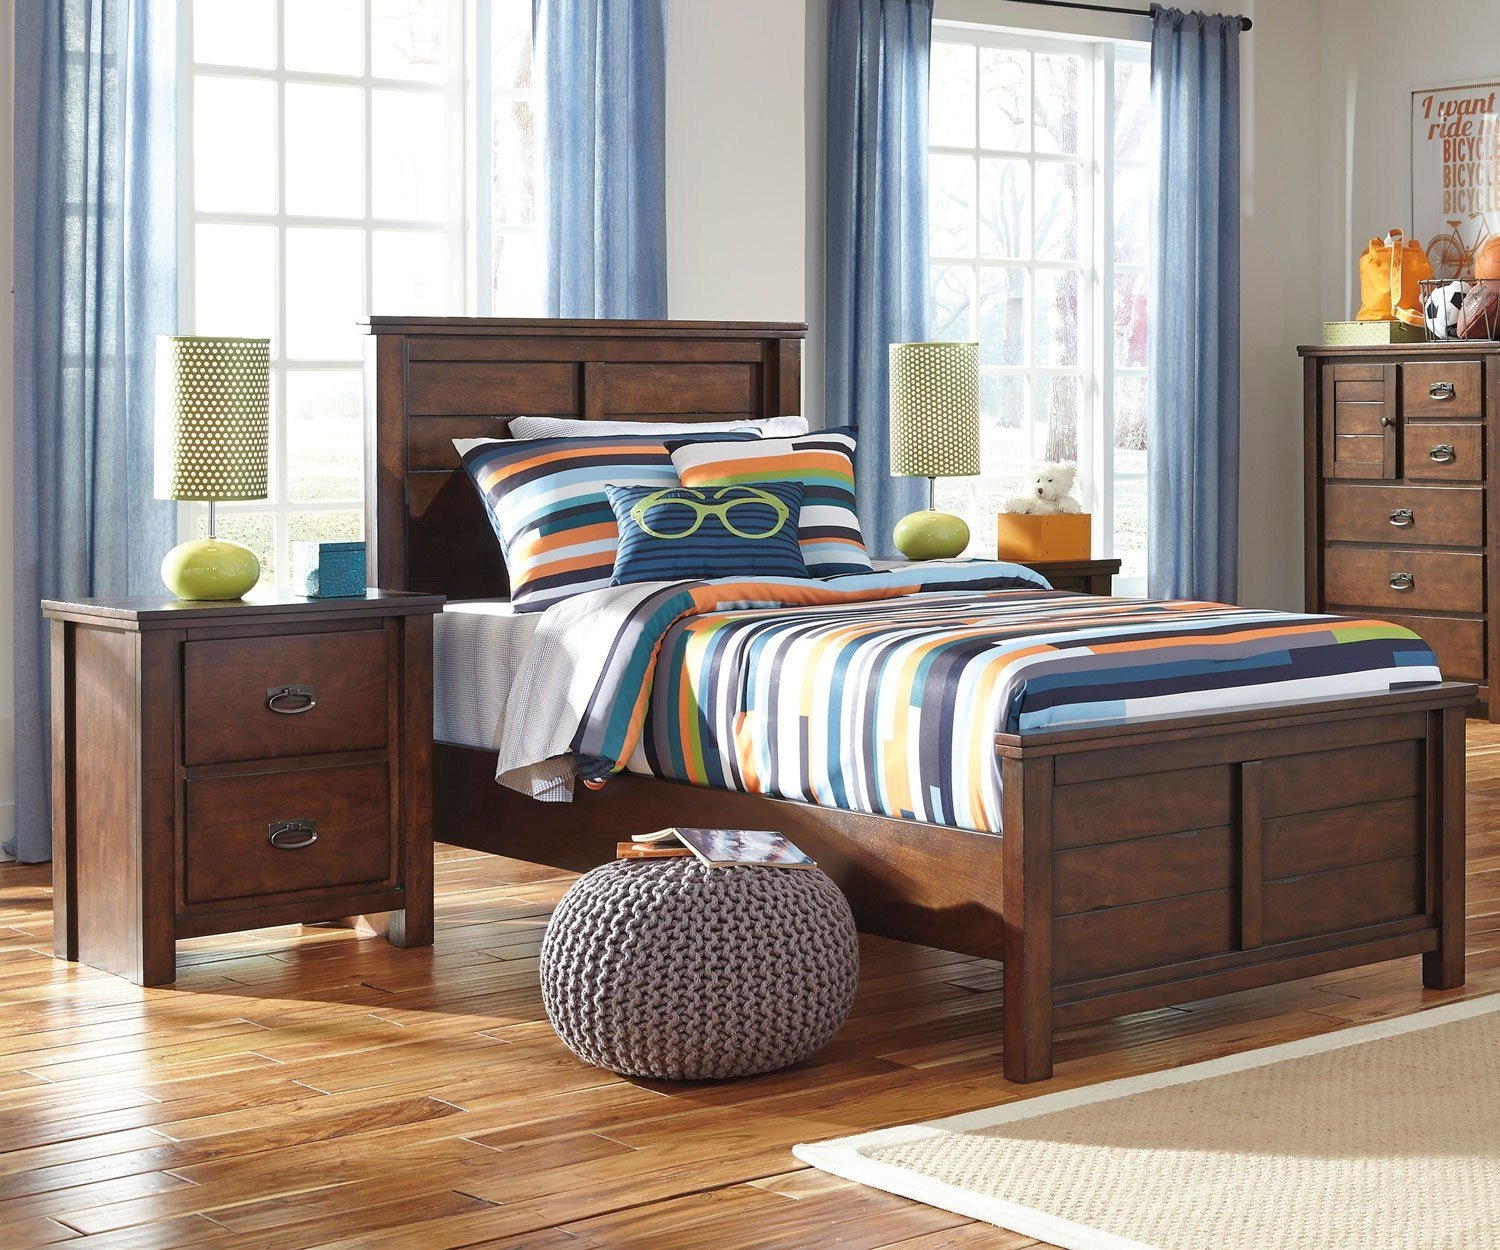 Best Ladiville B567 Panel Bed Twin Size Ashley Furniture With Pictures